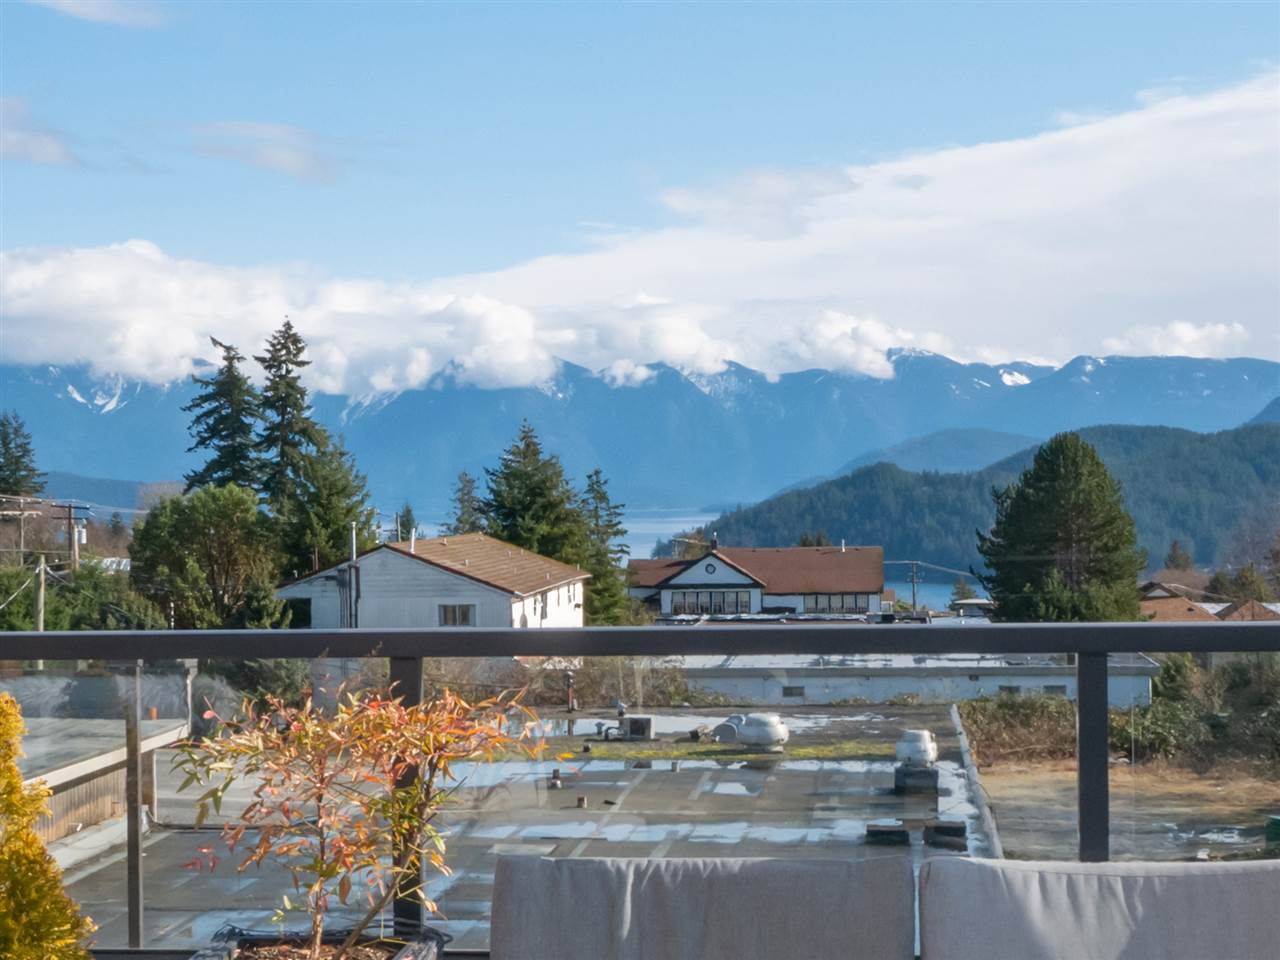 210 210 875 GIBSONS WAY - Gibsons & Area Apartment/Condo for sale, 2 Bedrooms (R2542139) - #2